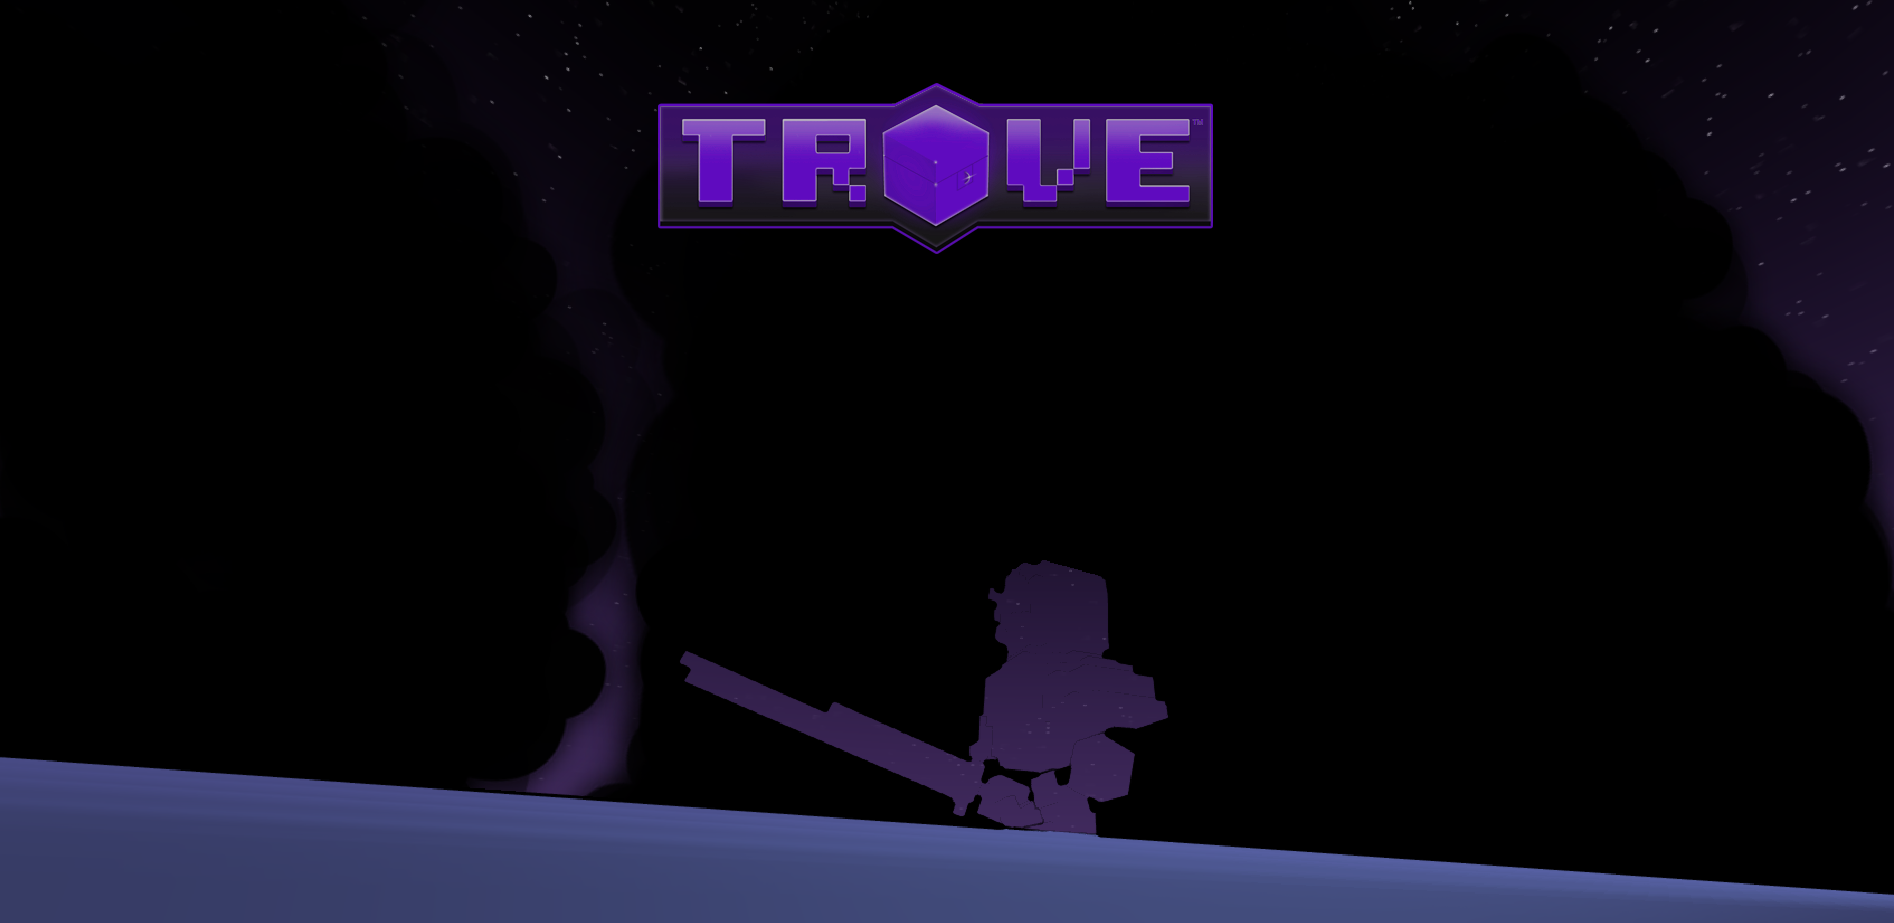 Trove HD Wallpapers, Desktop Images